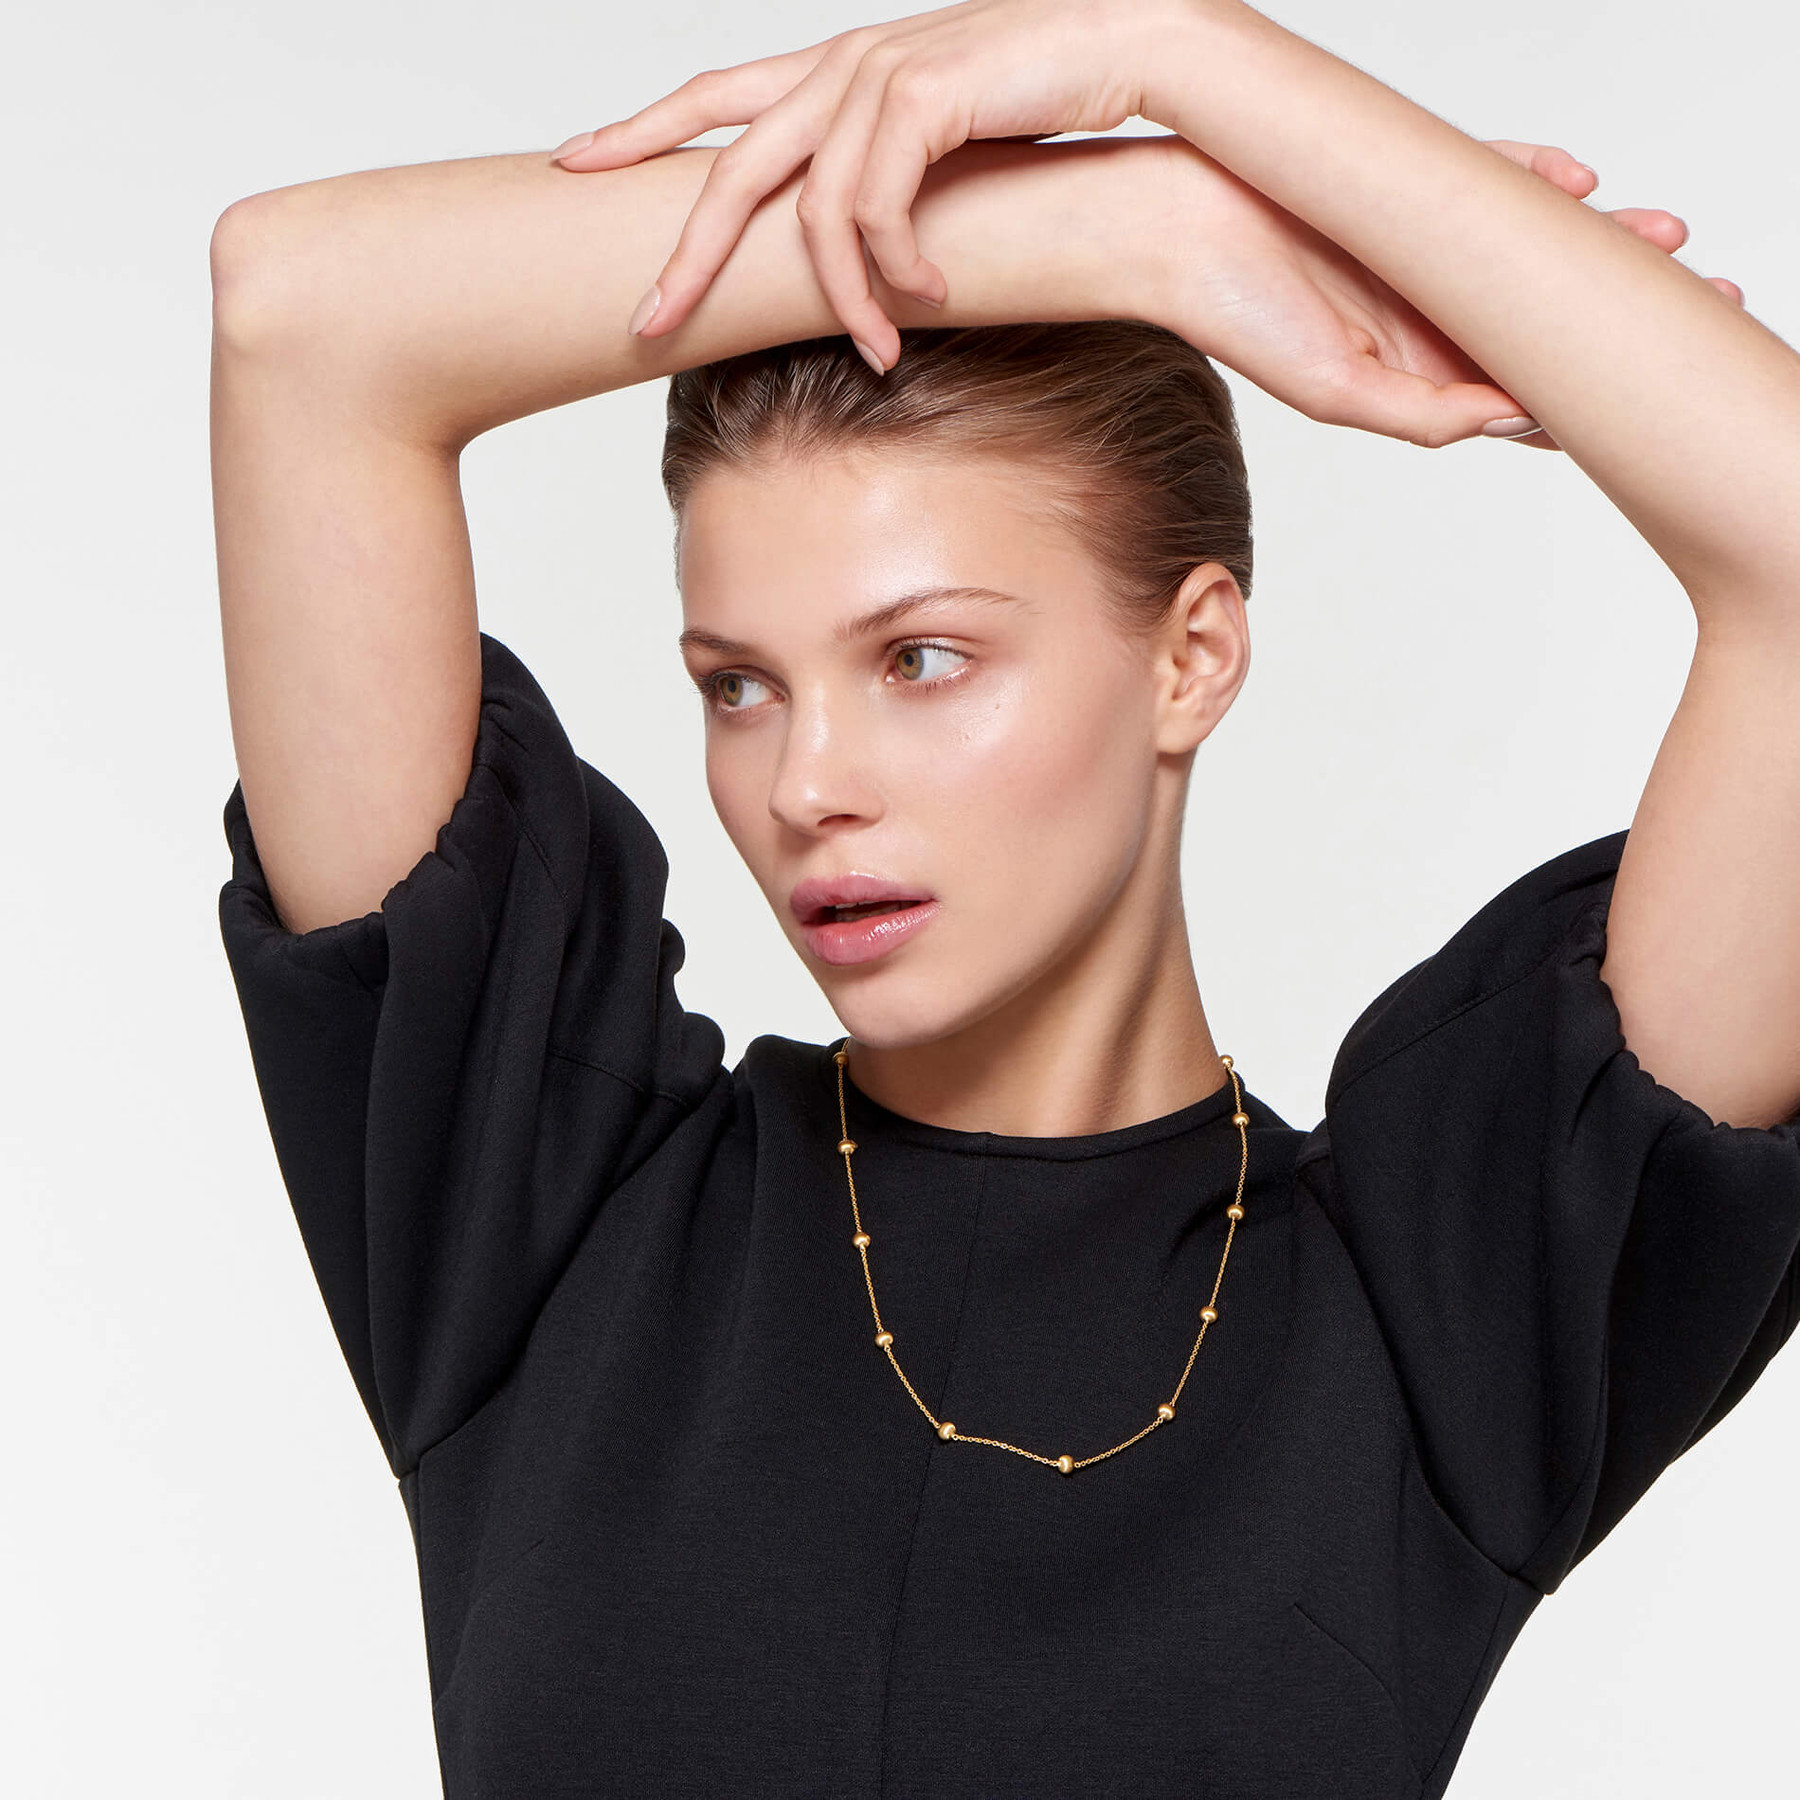 graceful woman modeling 22 karat gold necklace with small spheres in orbital pattern